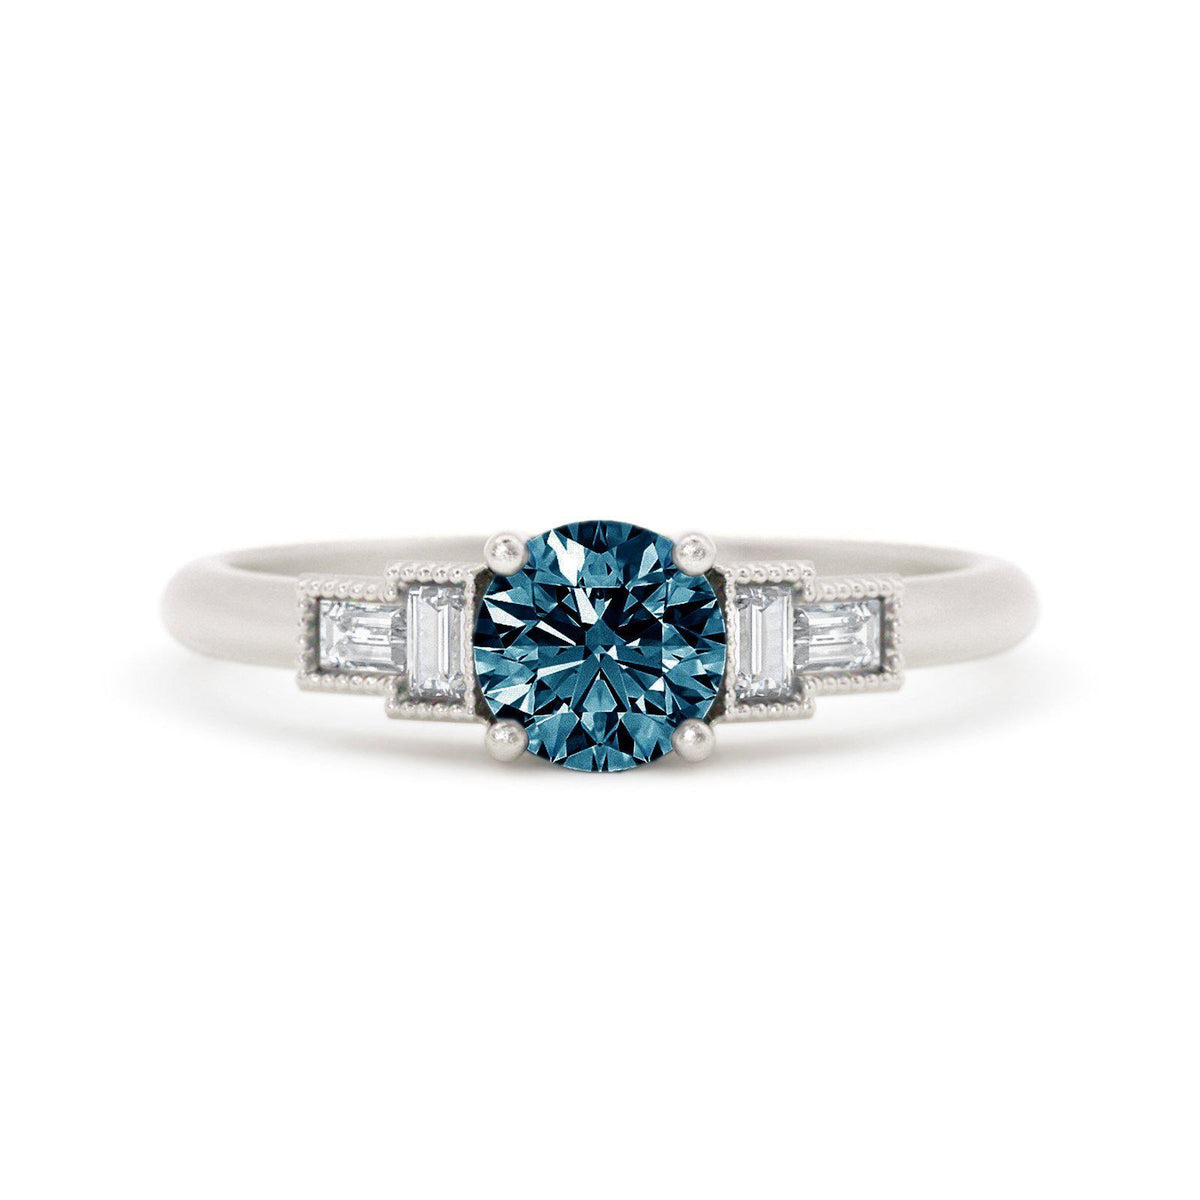 Marlow Montana Sapphire Ring with Baguette Diamonds White Gold